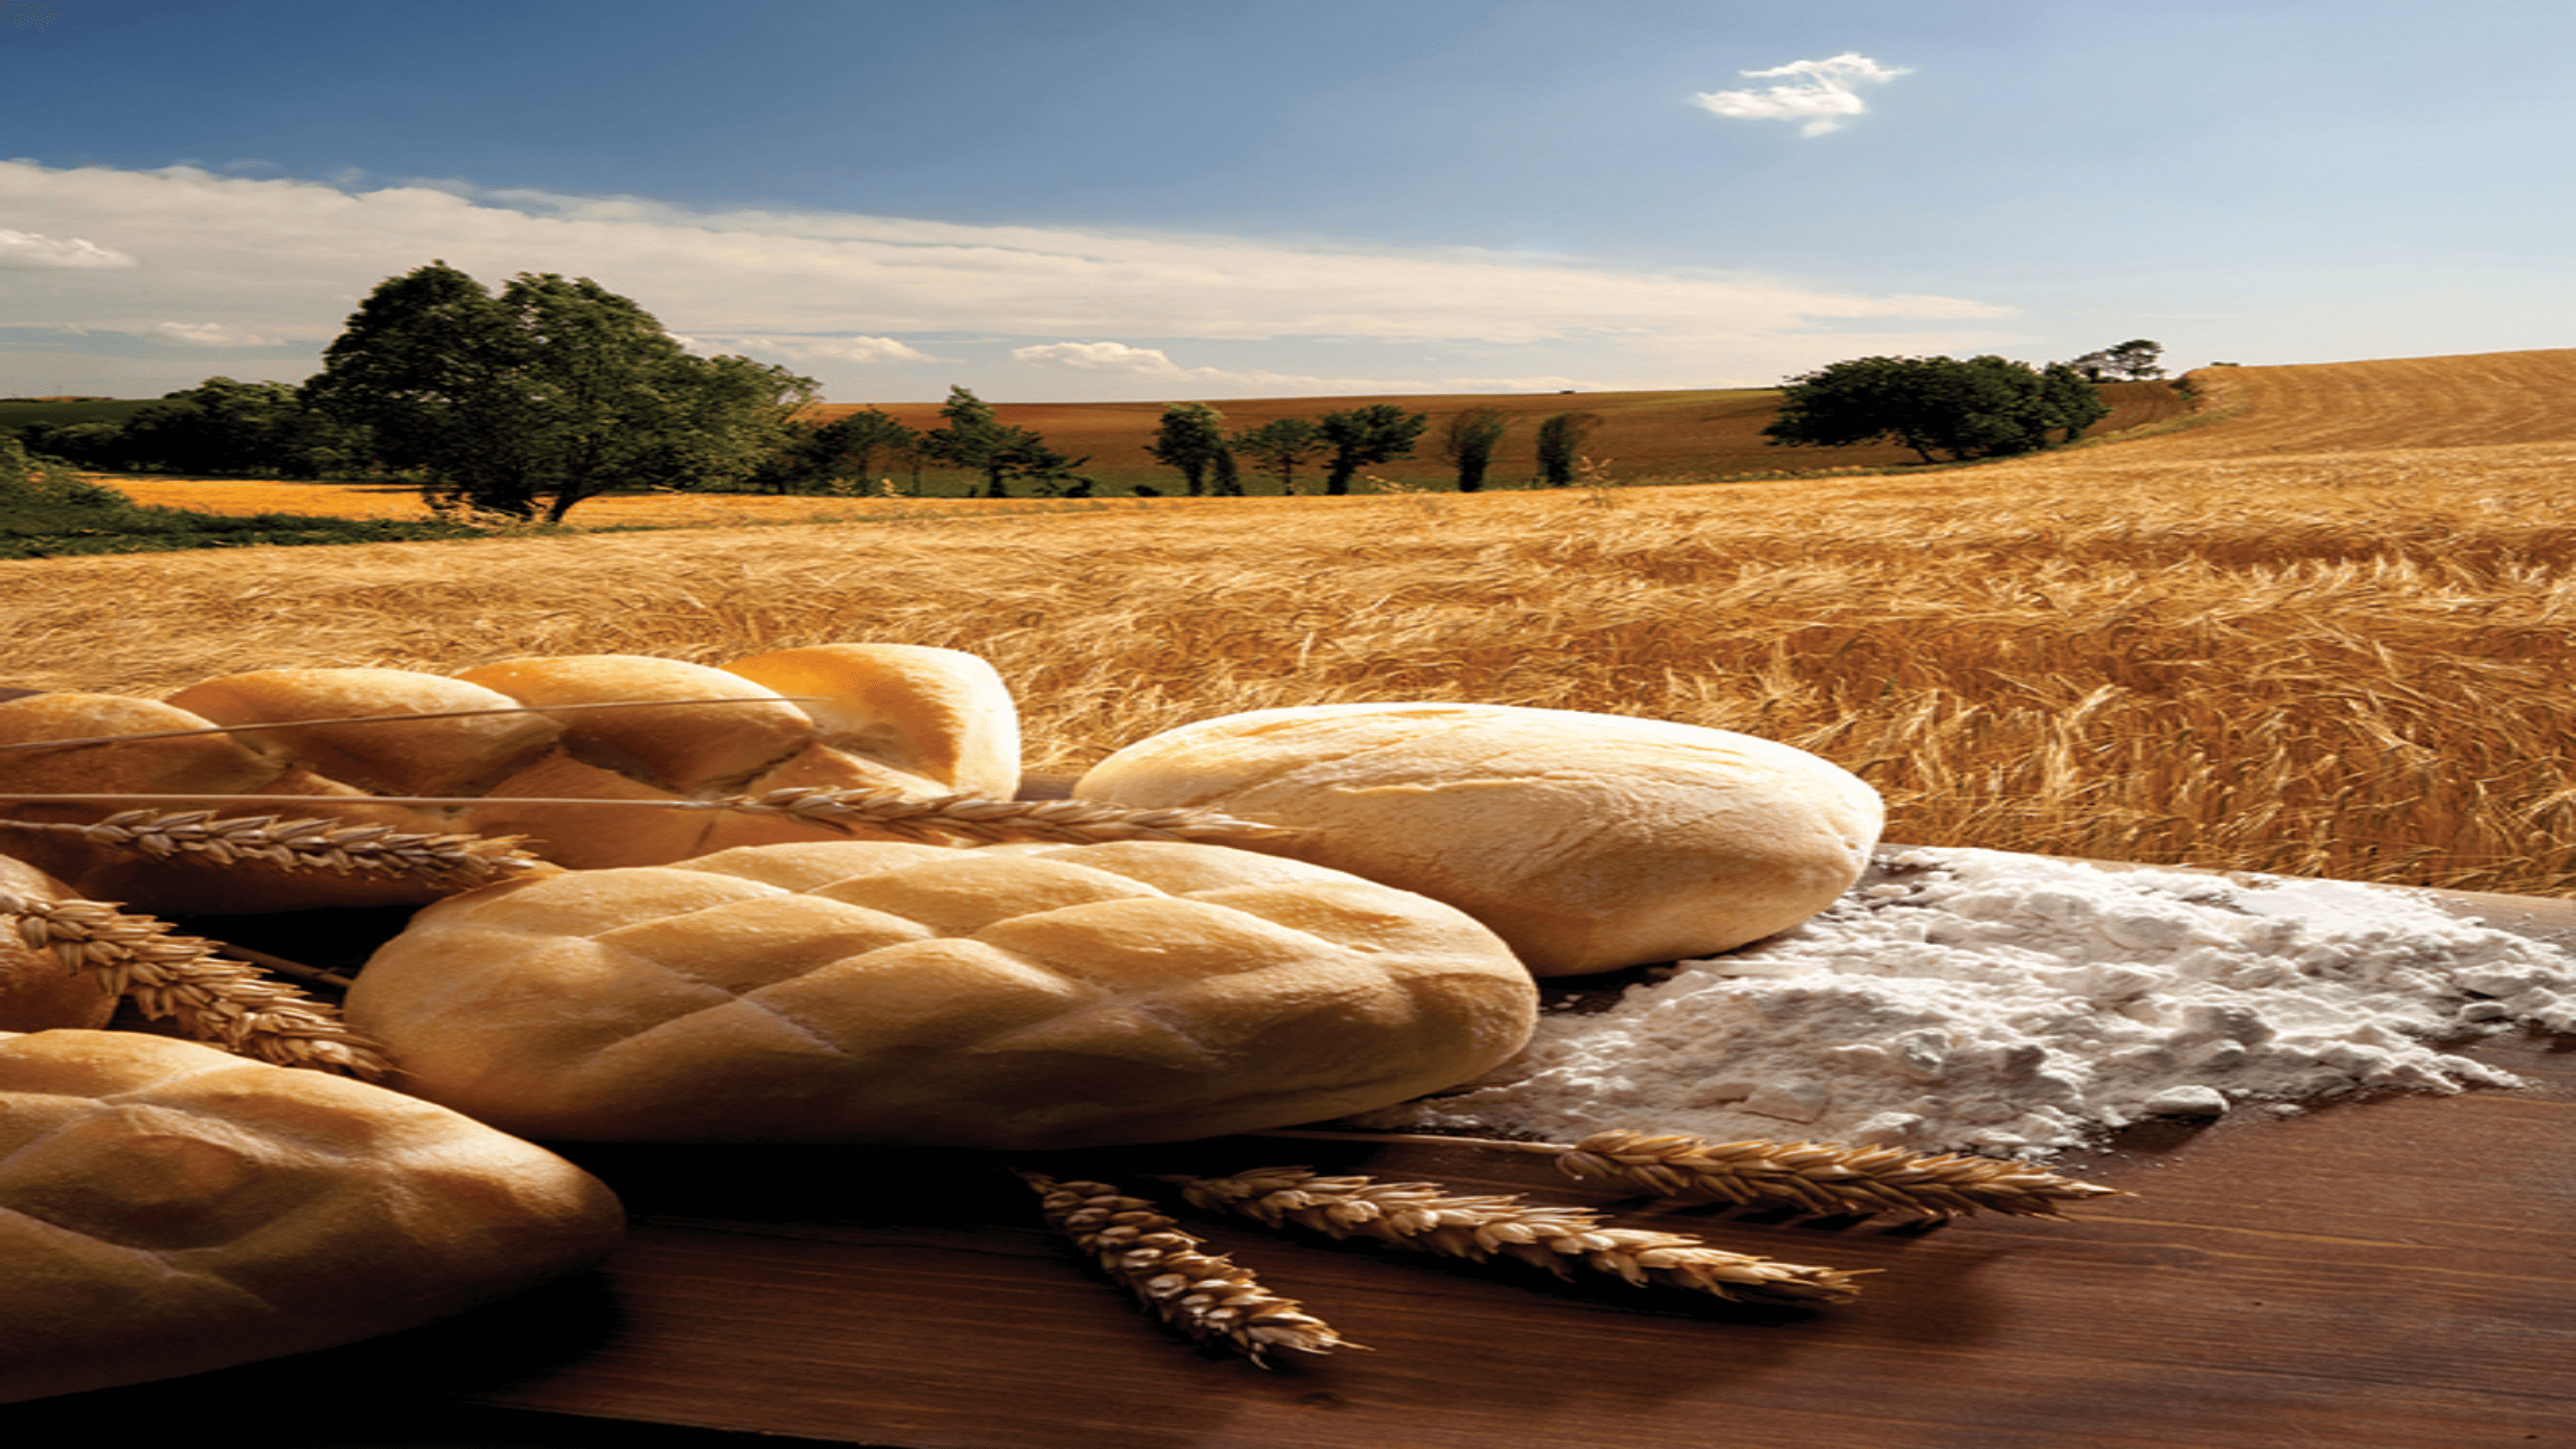 Bakery goods in a field of wheat